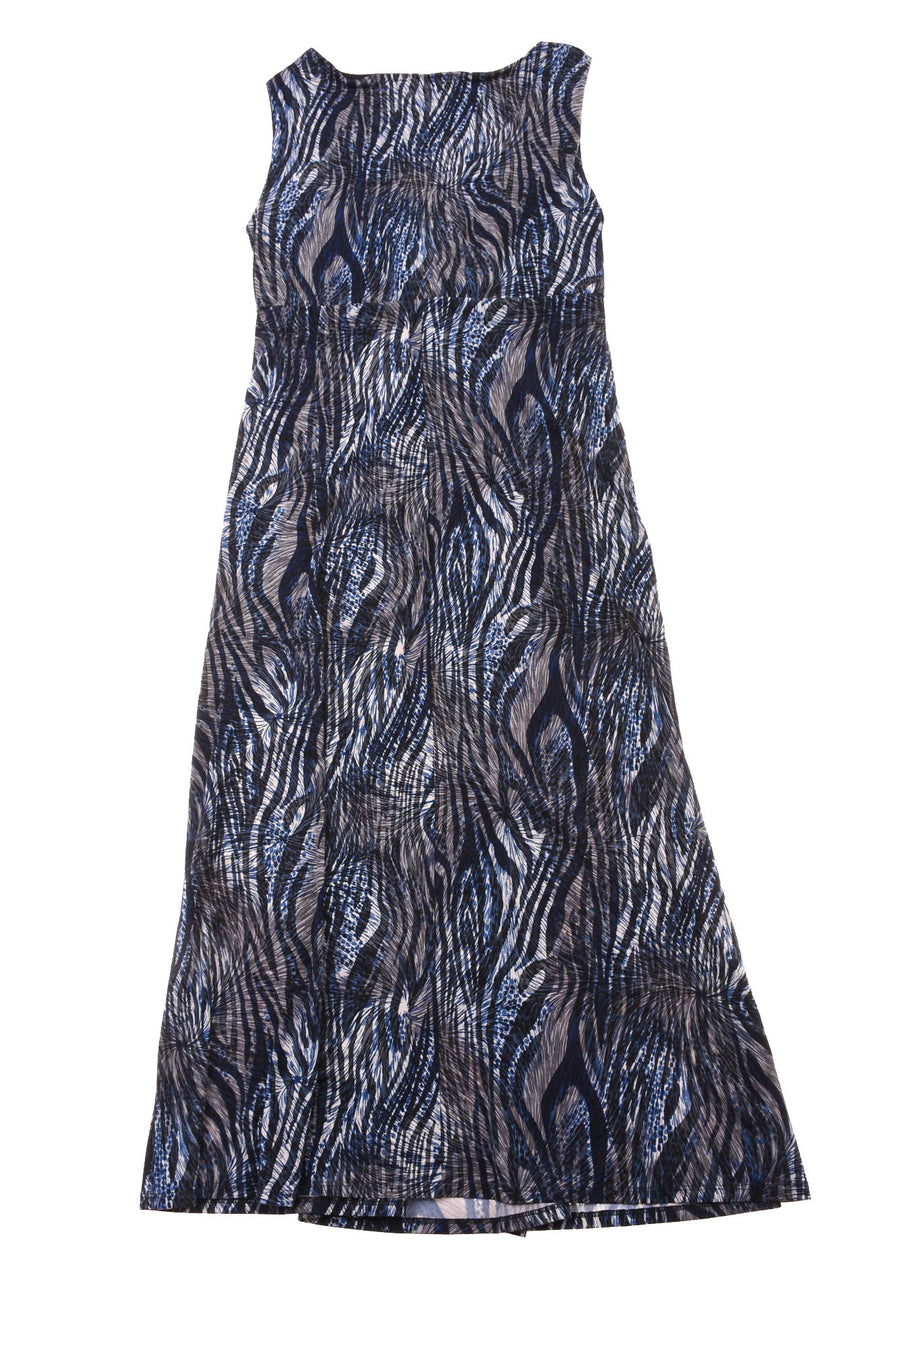 NEW Christopher & Banks Women's Dress  6 Blue & Black